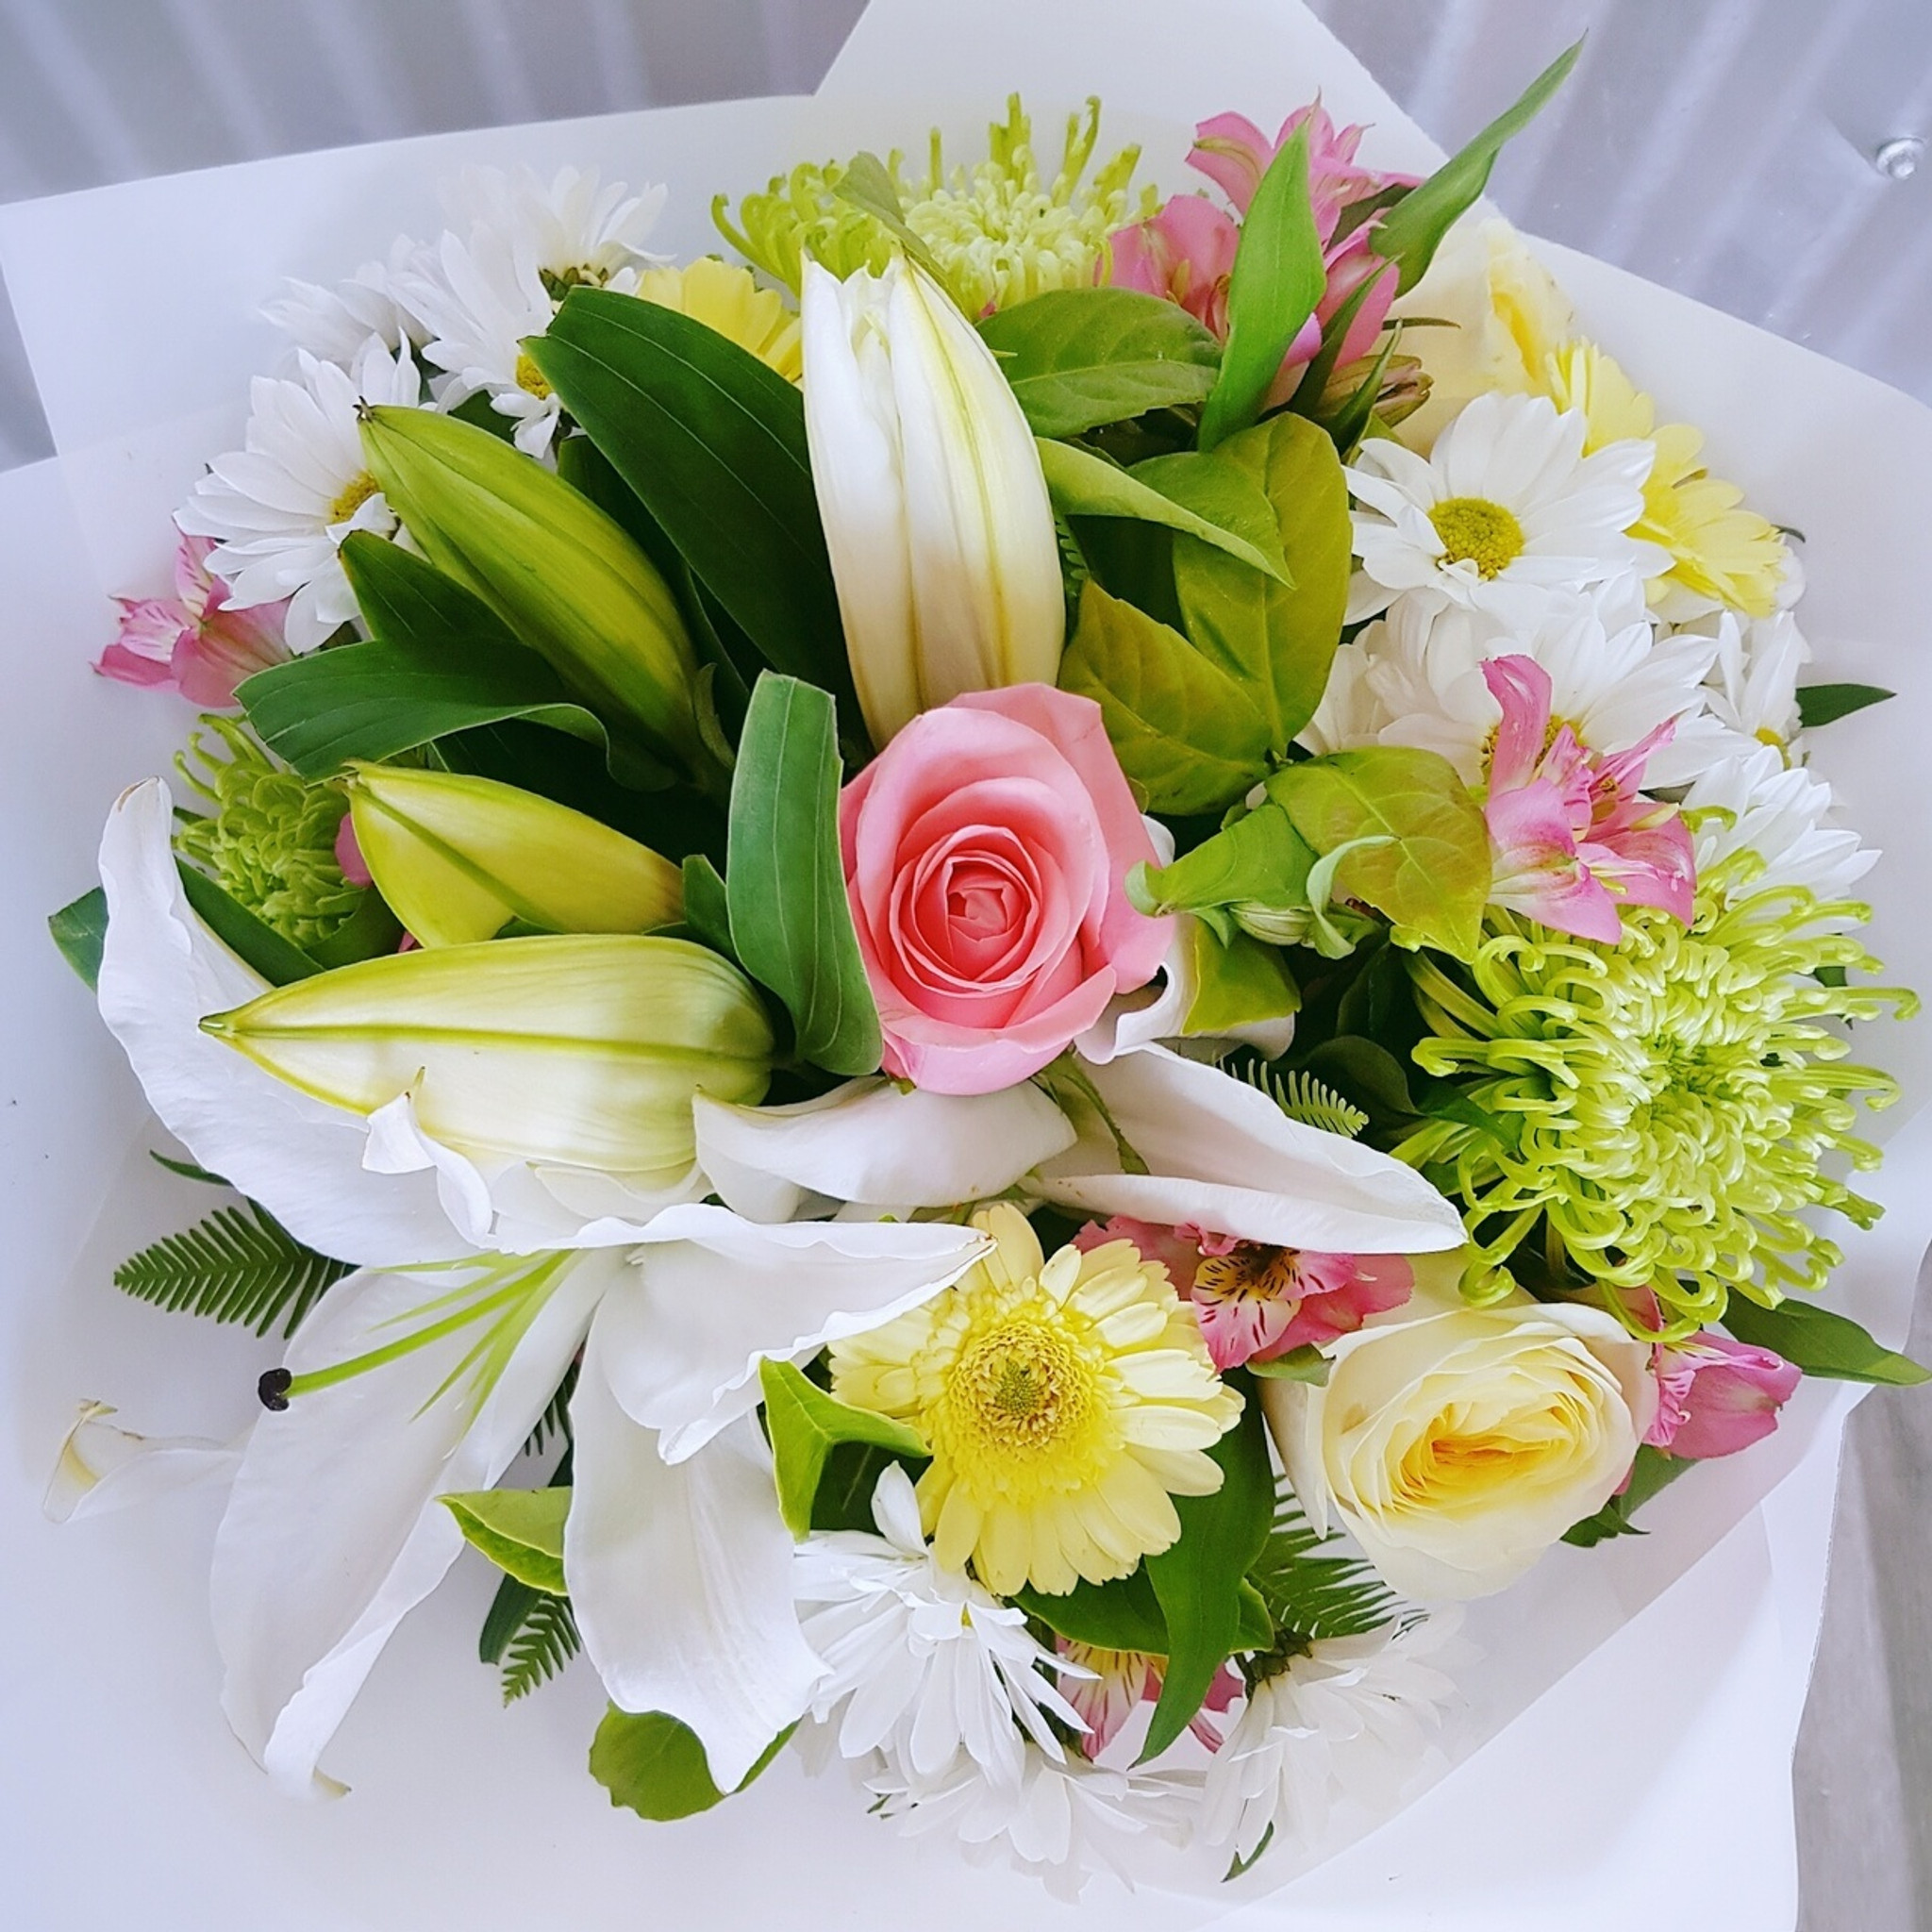 How To Care For Your Freshly Delivered Flowers